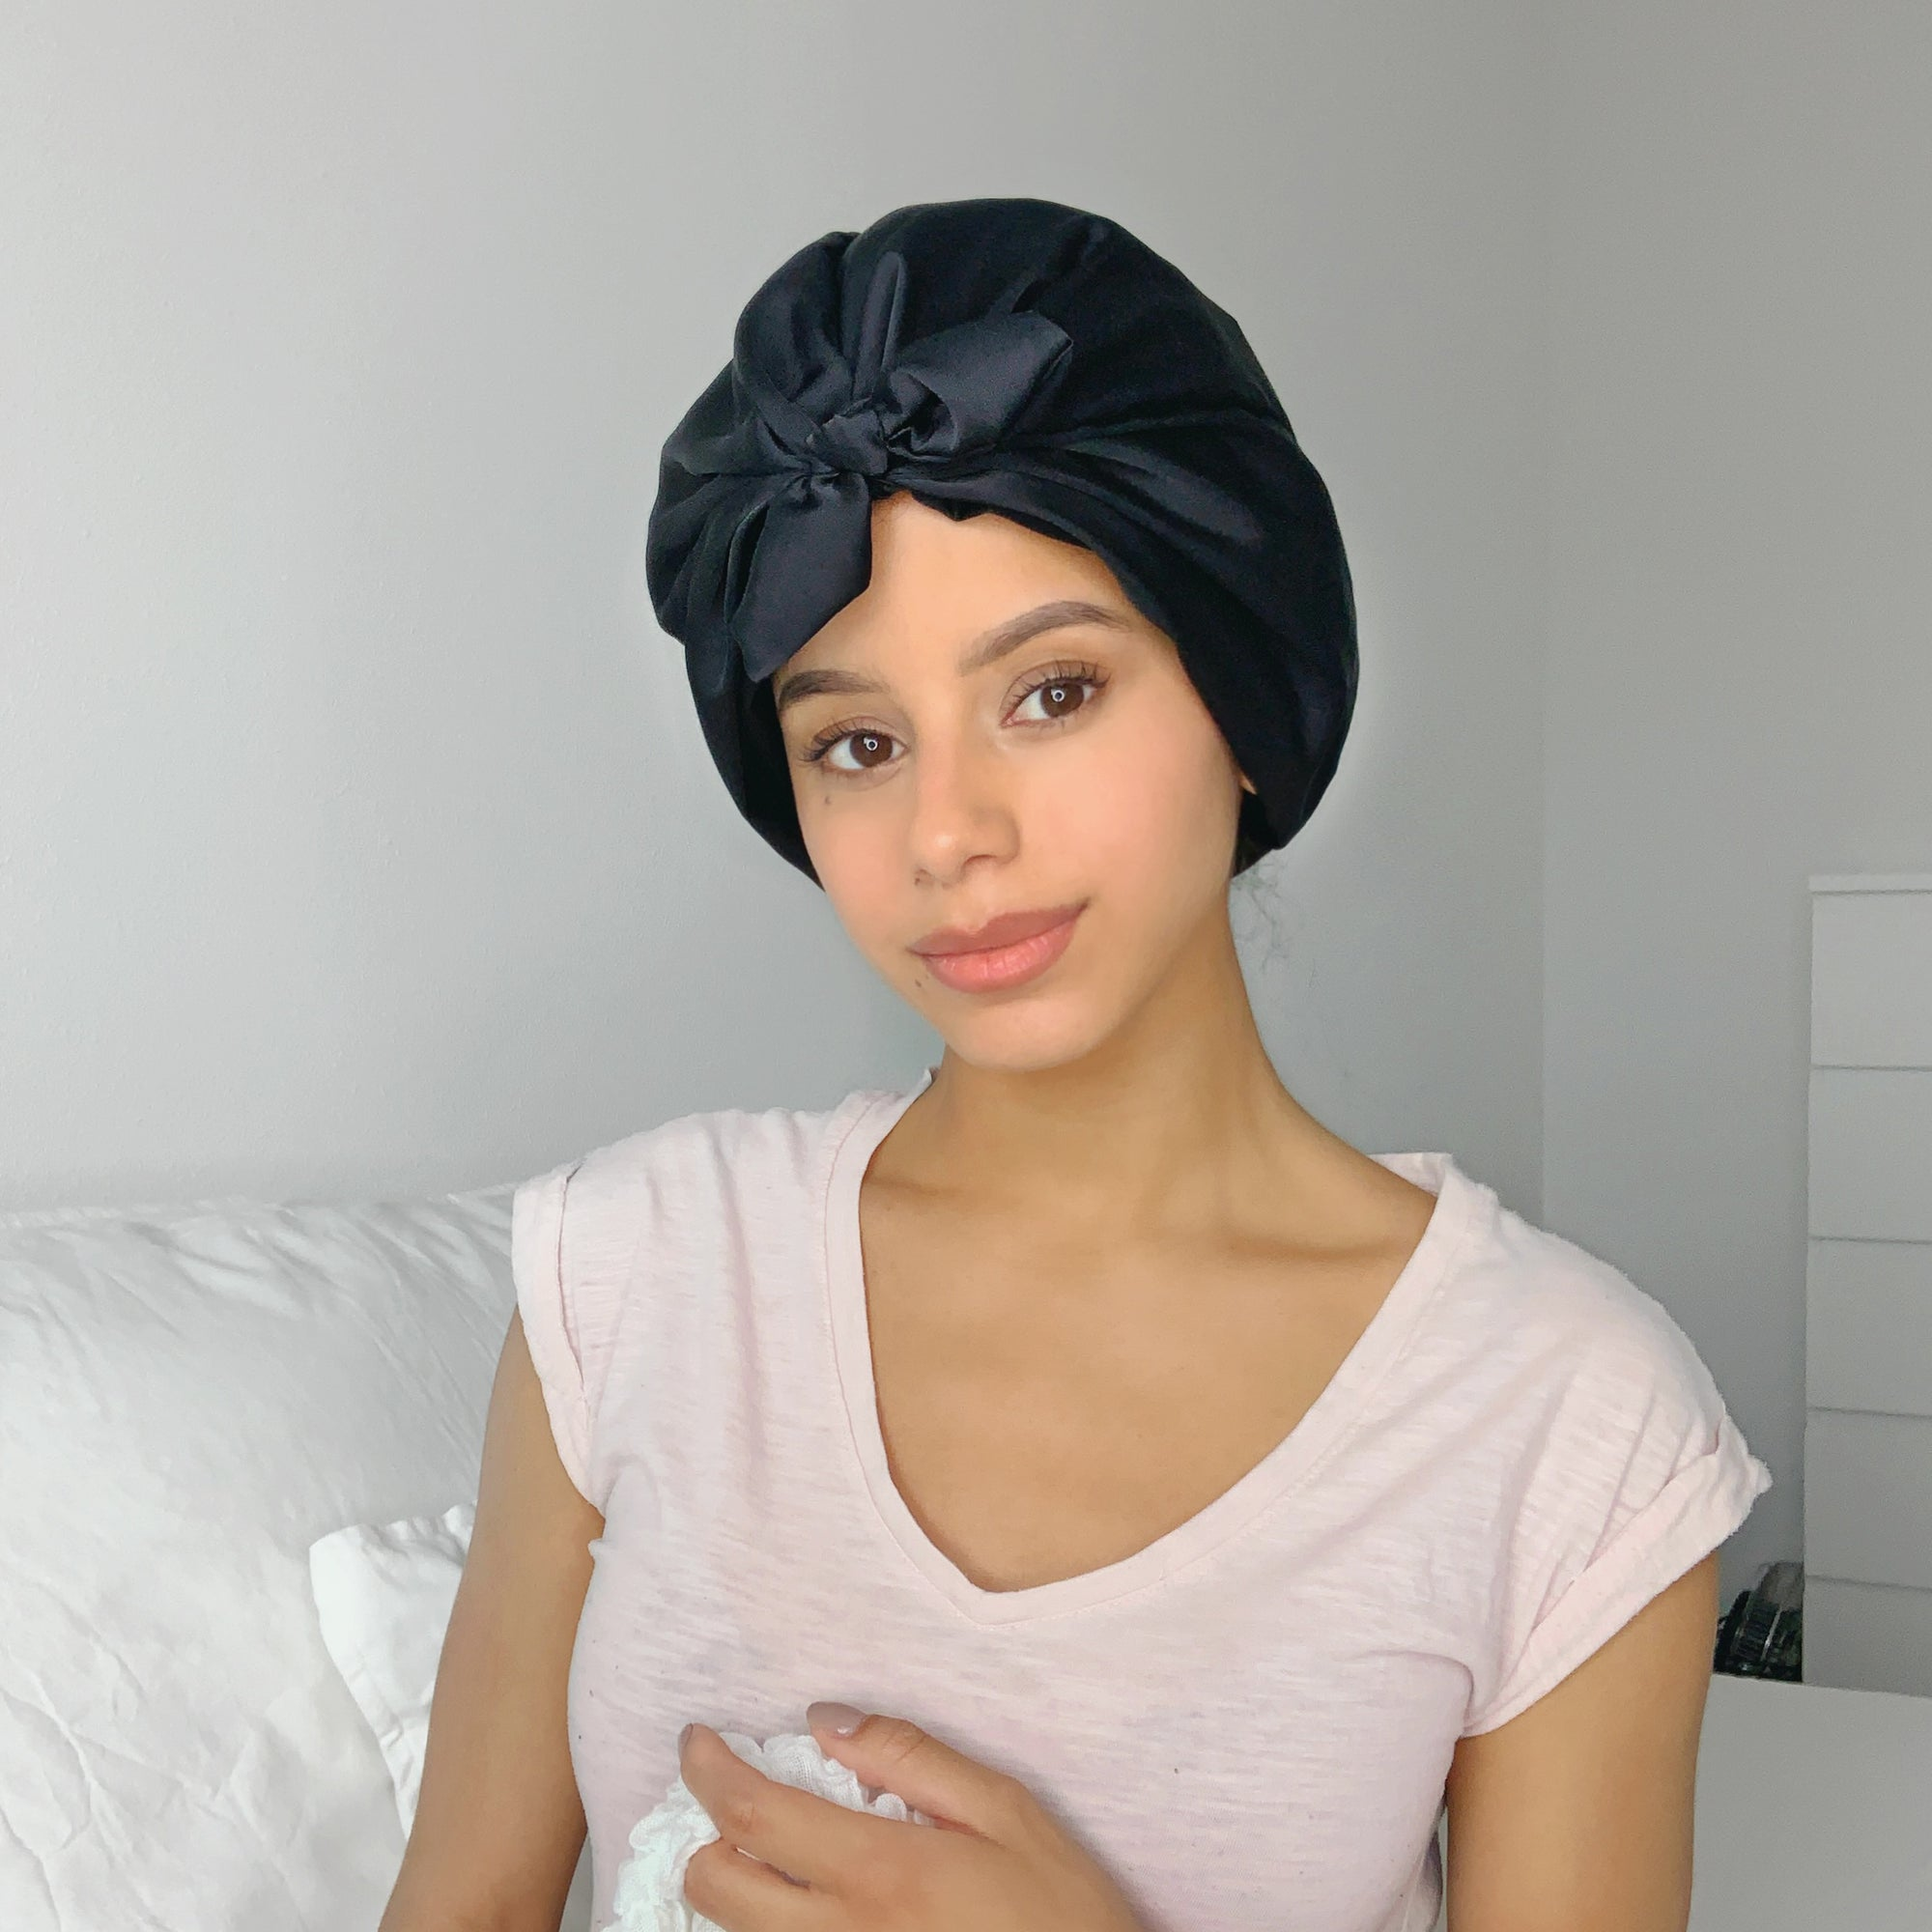 Only Curls Satin Sleep Turban - Slate Grey - Only Curls